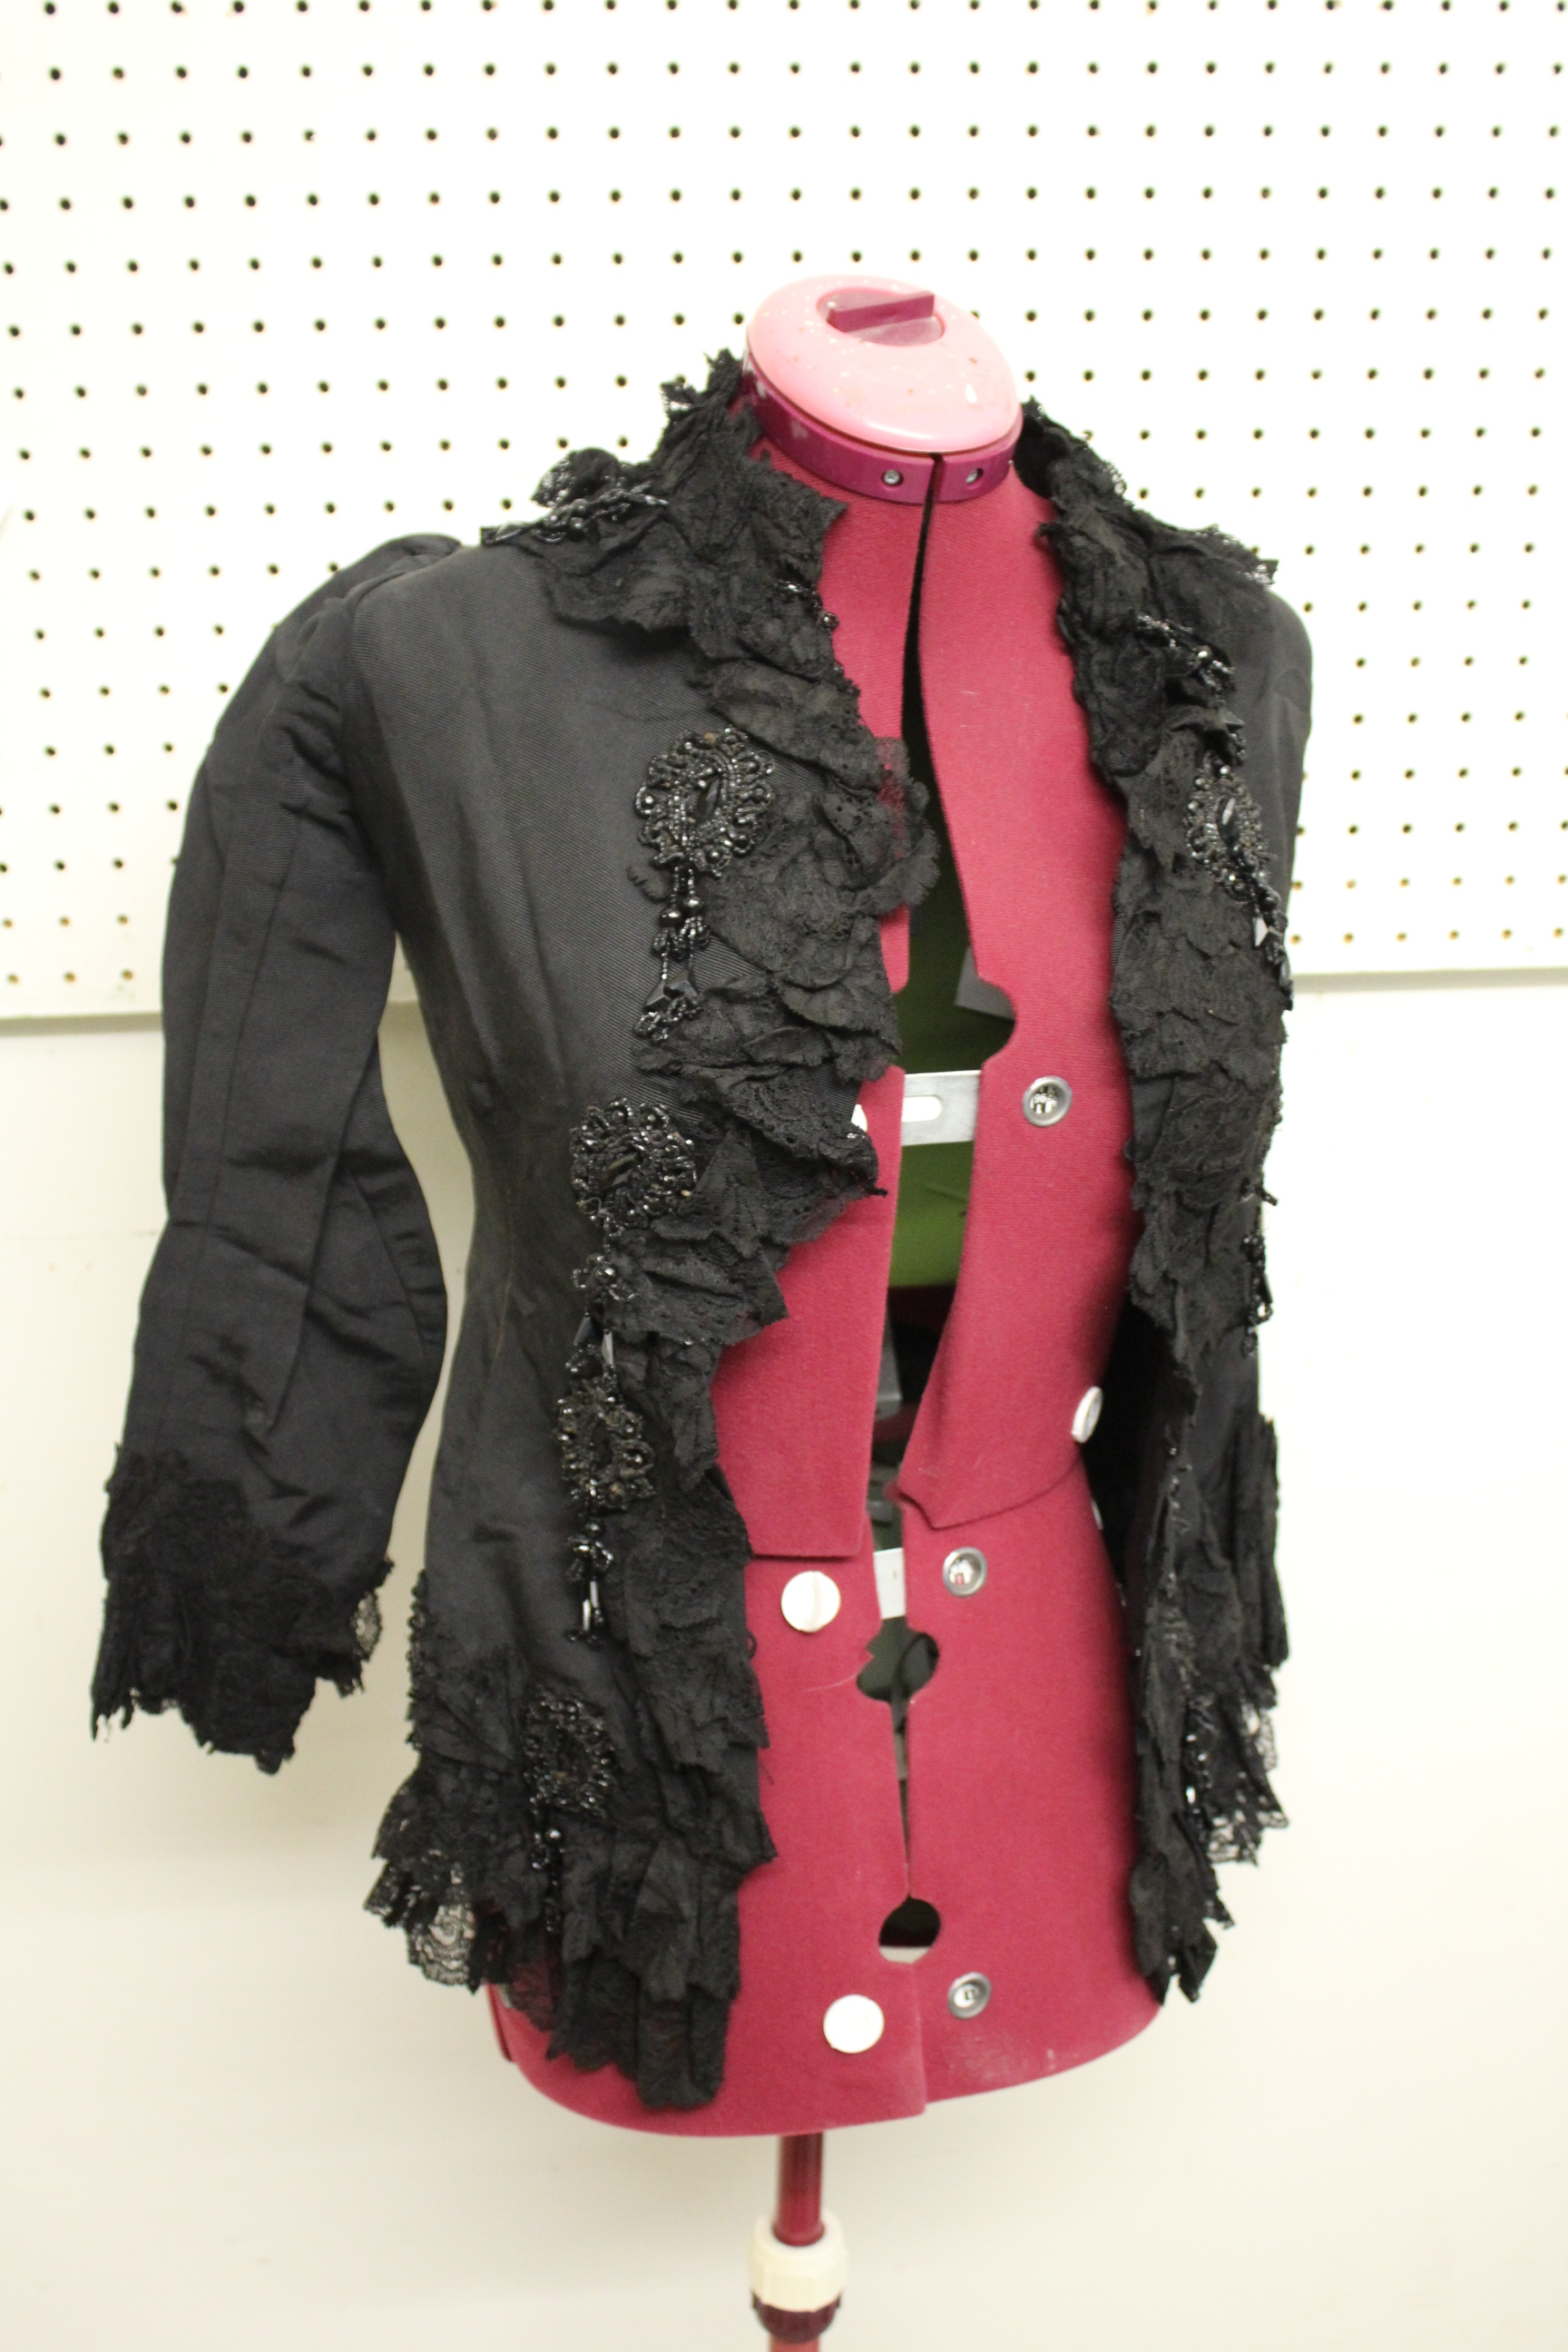 19THC JACKET a black grosgrain jacket embellished with lace and bead embroidered motifs, by Cole